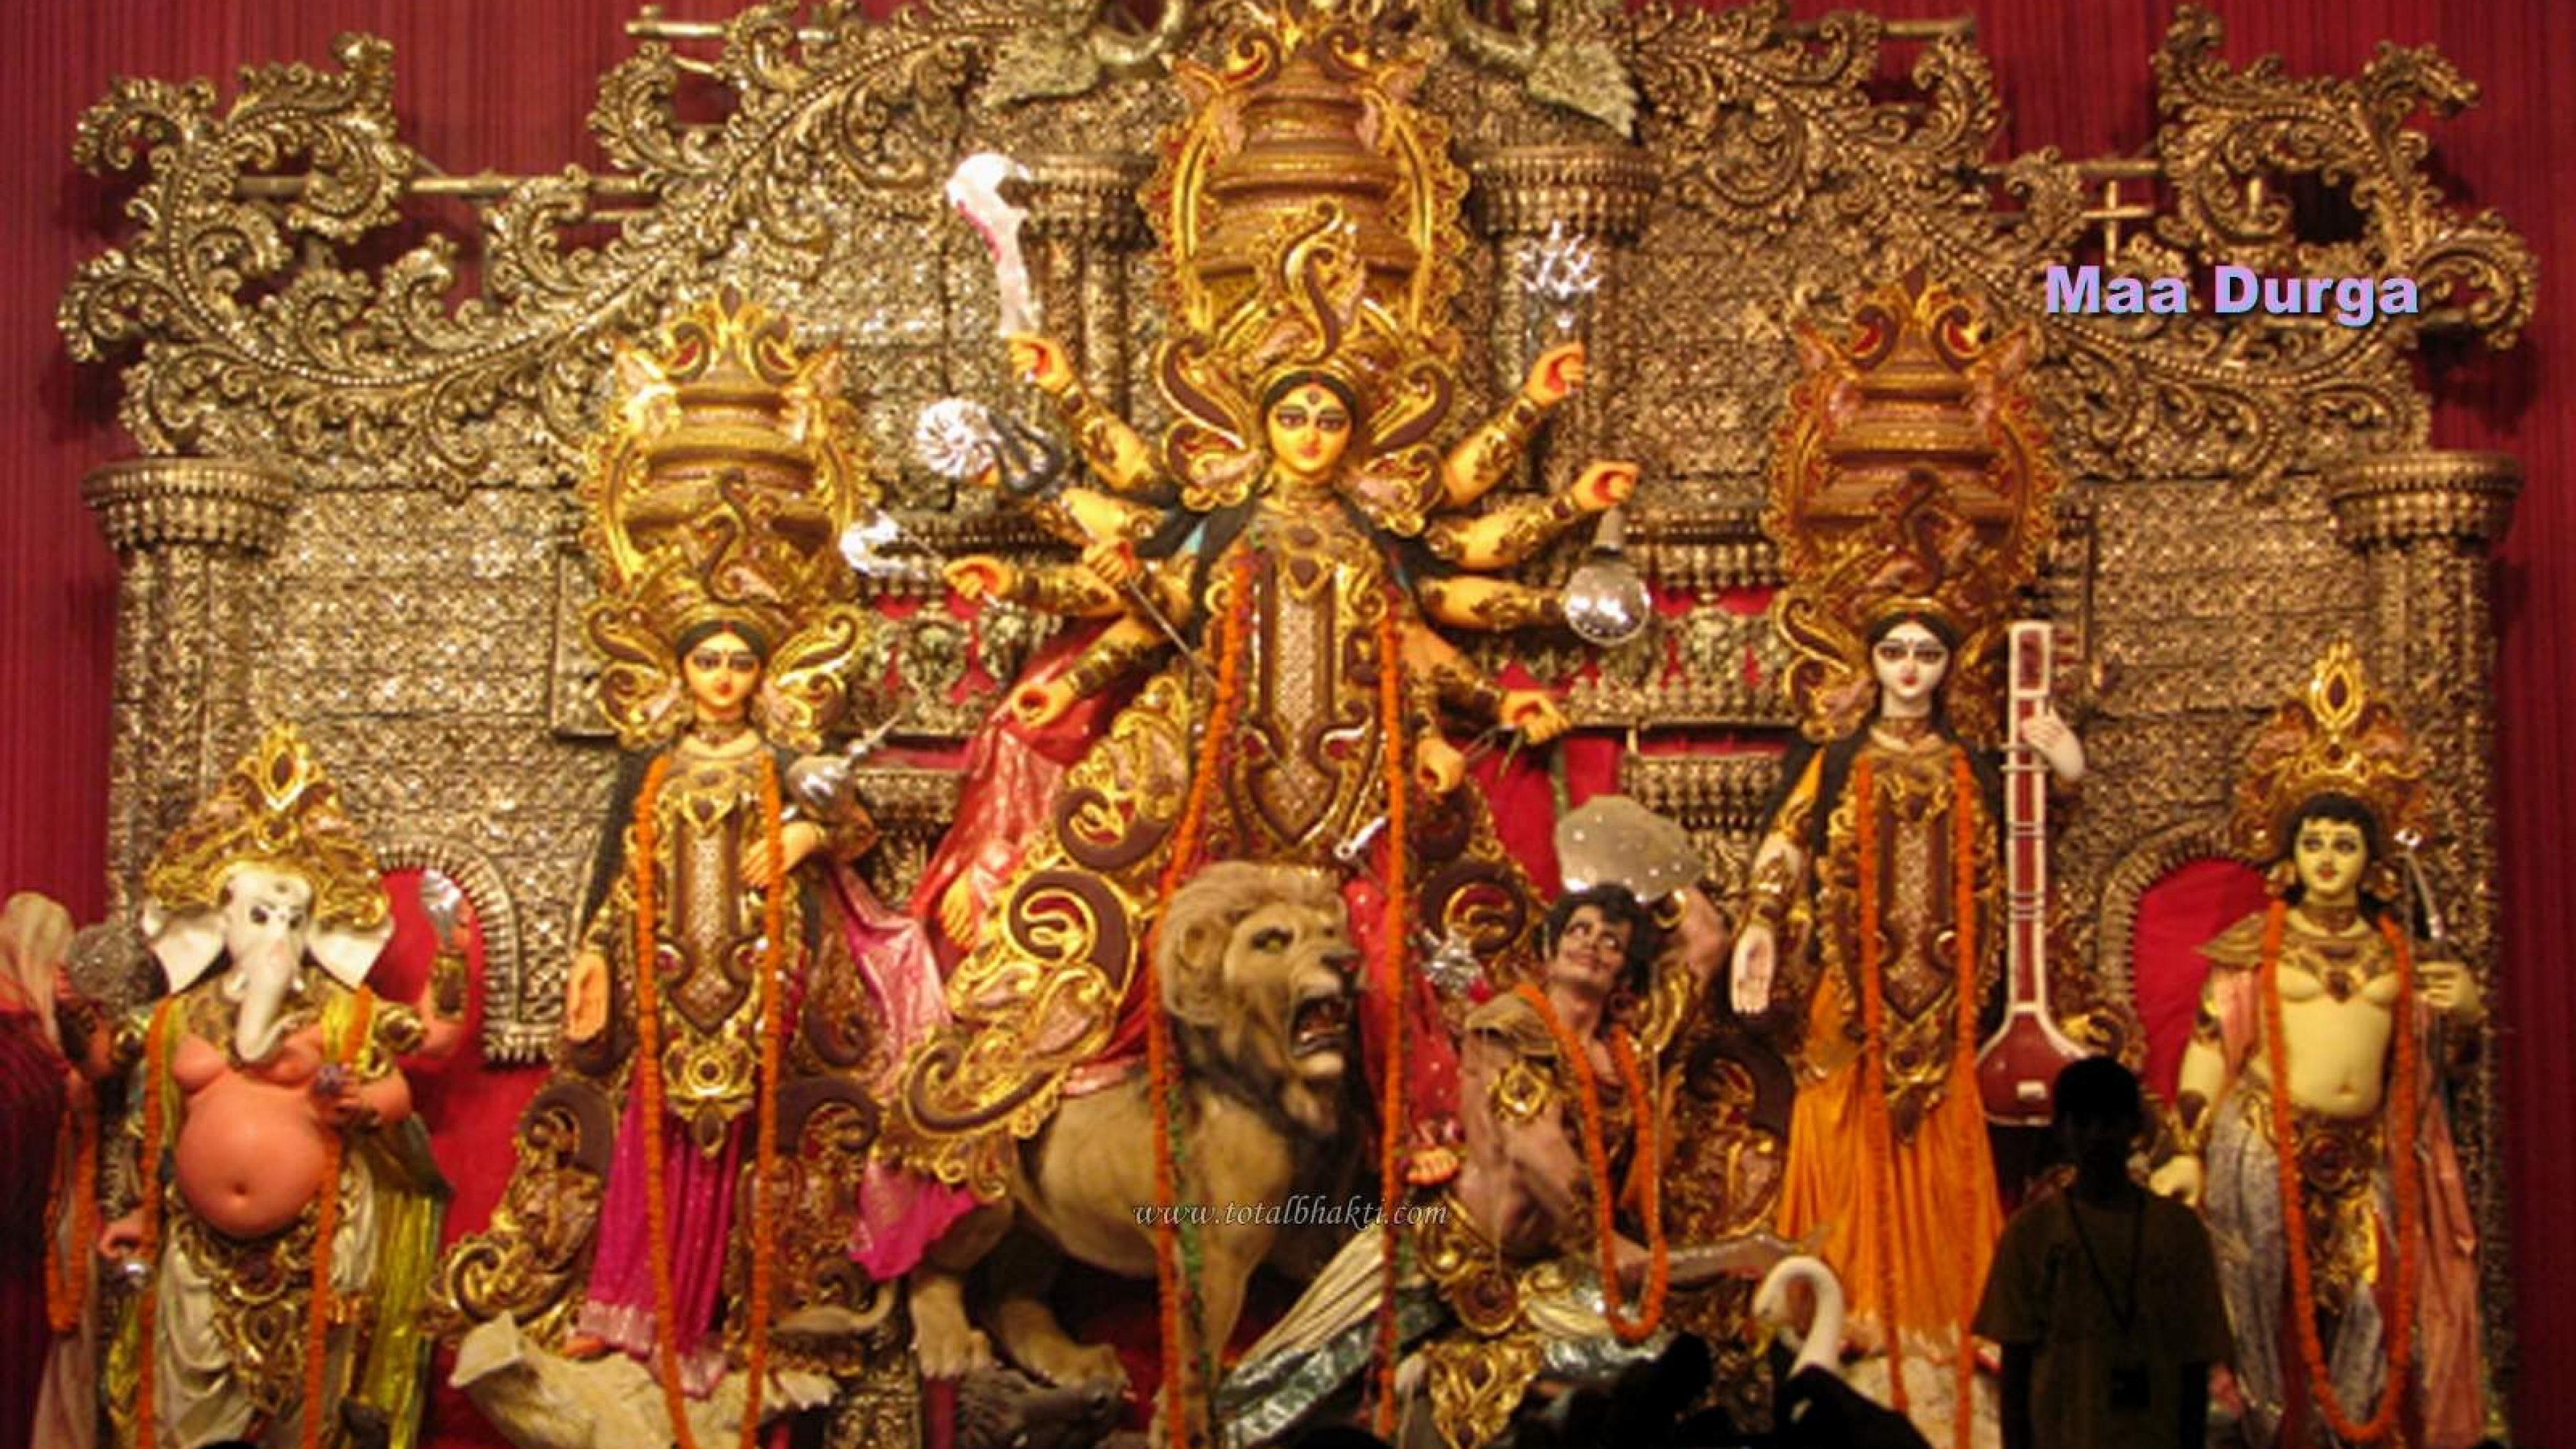 Maa Durga Hd Wallpaper 1080p For Pc Group Pictures 41 Maa Durga Hd Wallpaper Durga Maa Durga